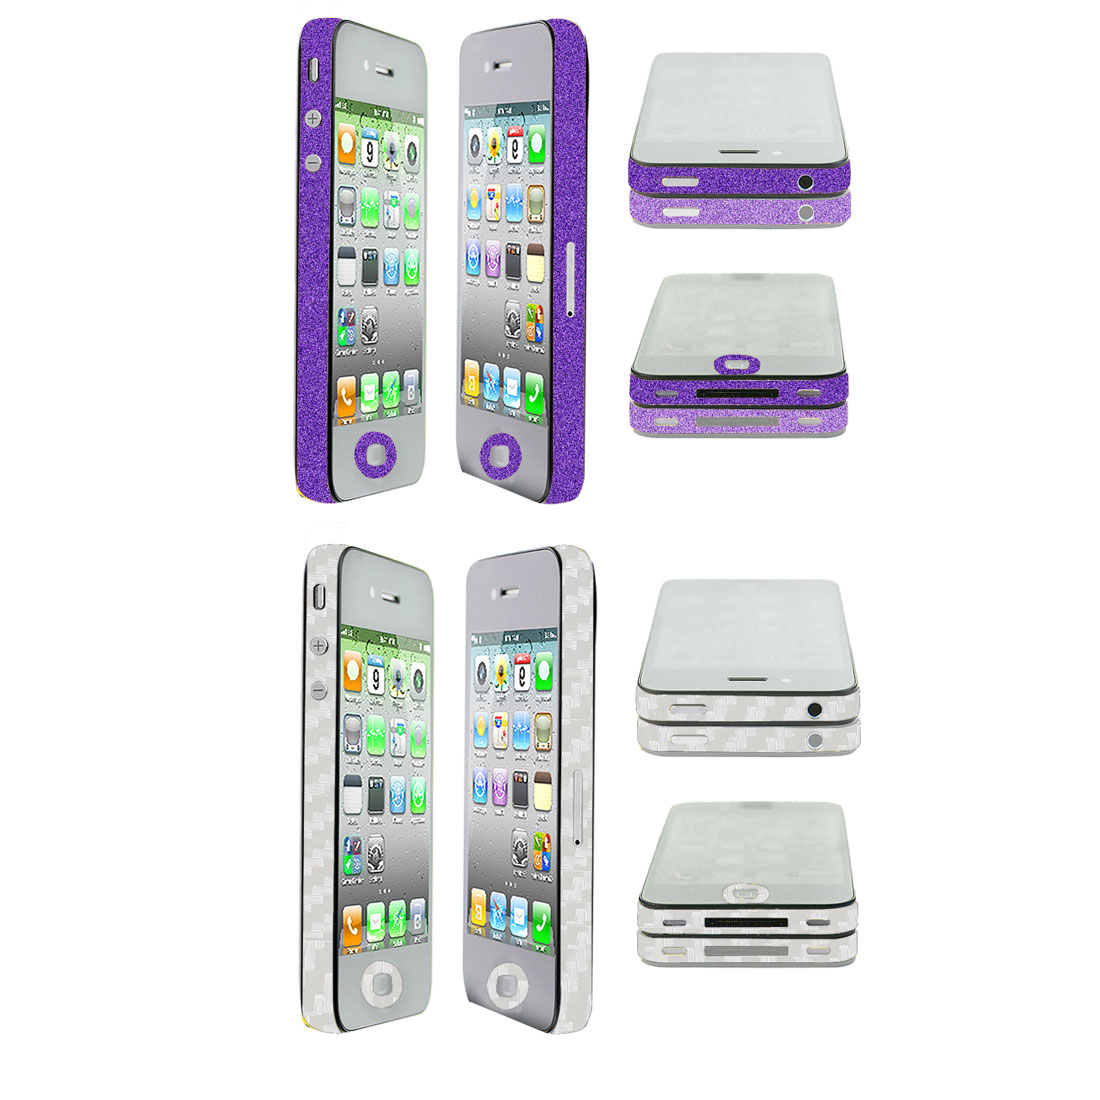 Shiny Purple Clear Edge Wrap Sticker Decal 2 Pcs for iPhone 4 4G 4S 4GS